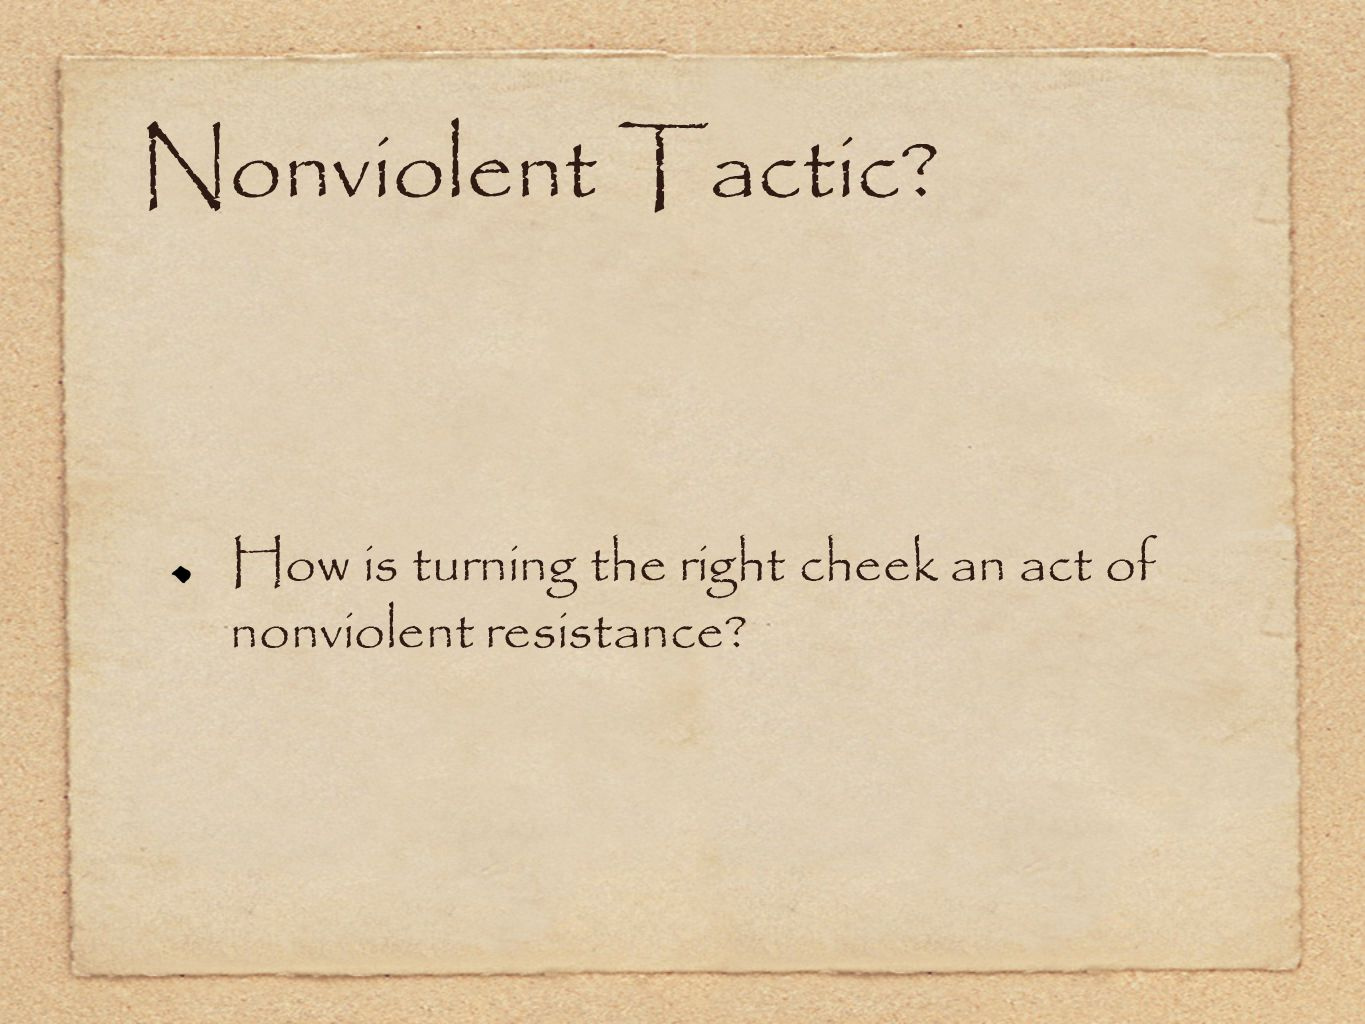 Nonviolent Tactic? How is turning the right cheek an act of nonviolent resistance?